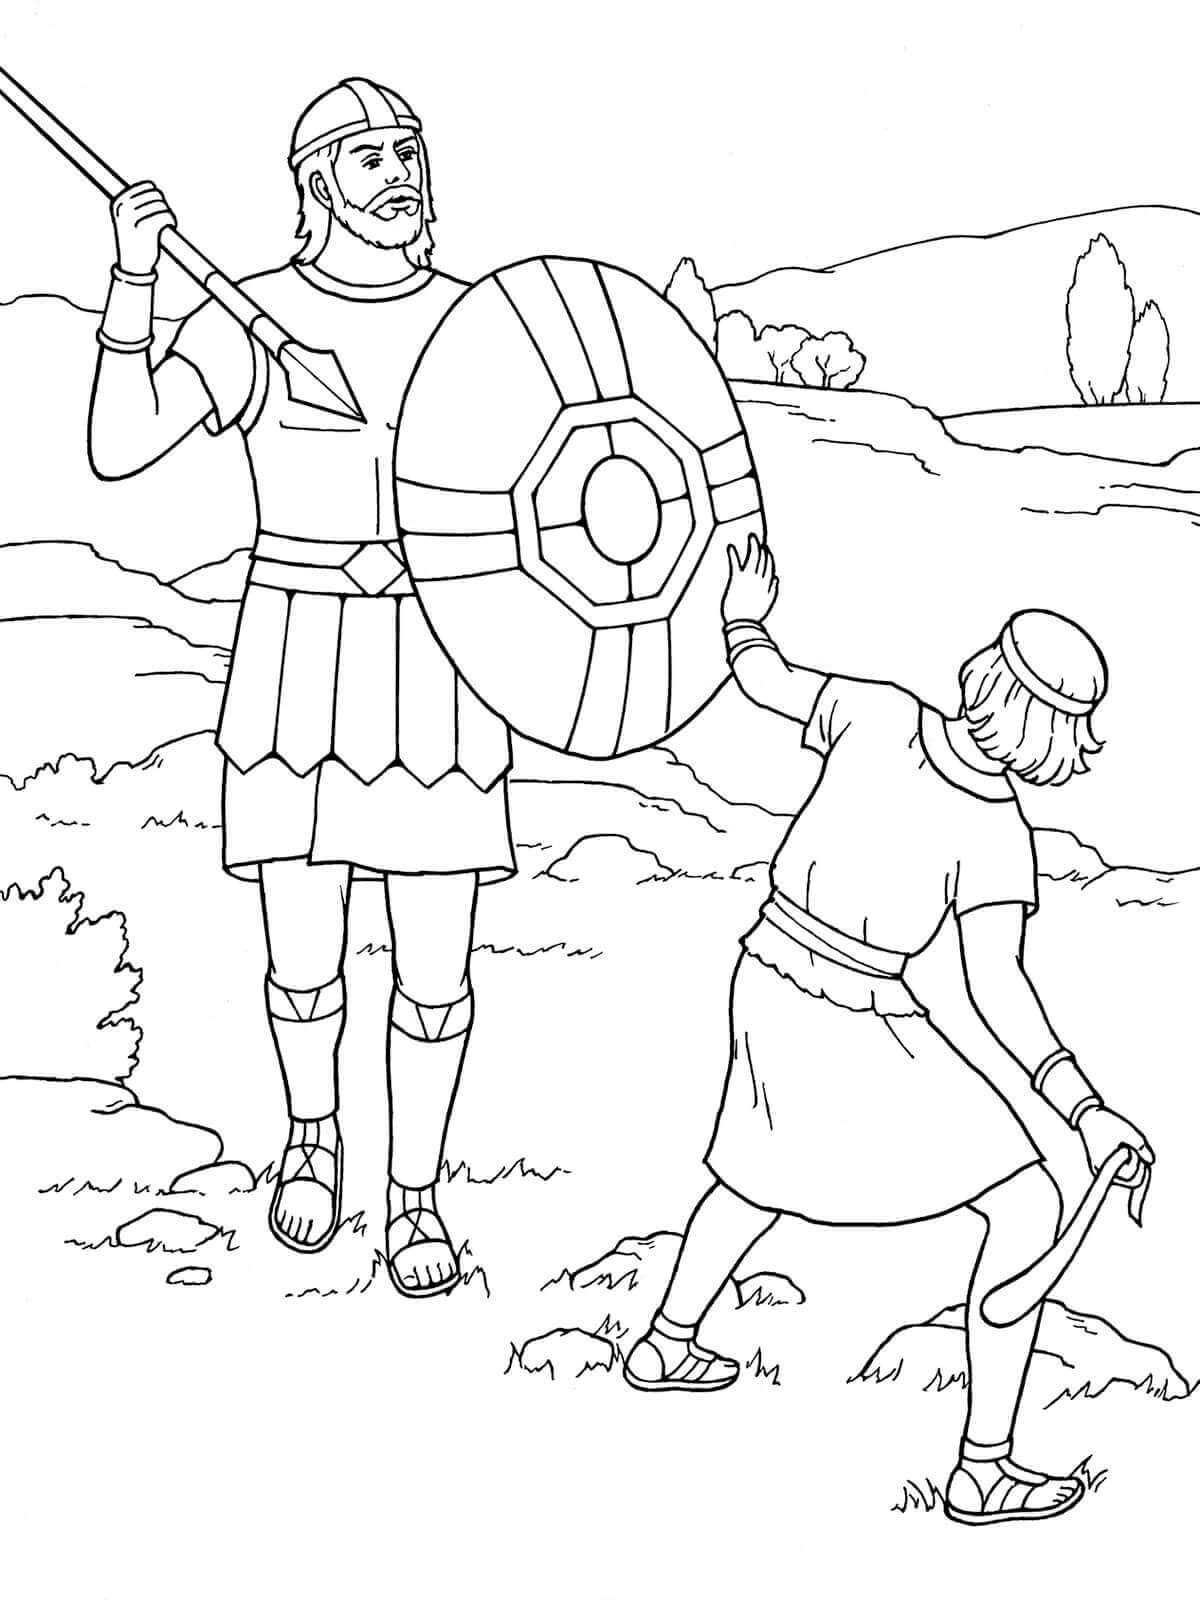 David And Goliath Sunday School Coloring Page